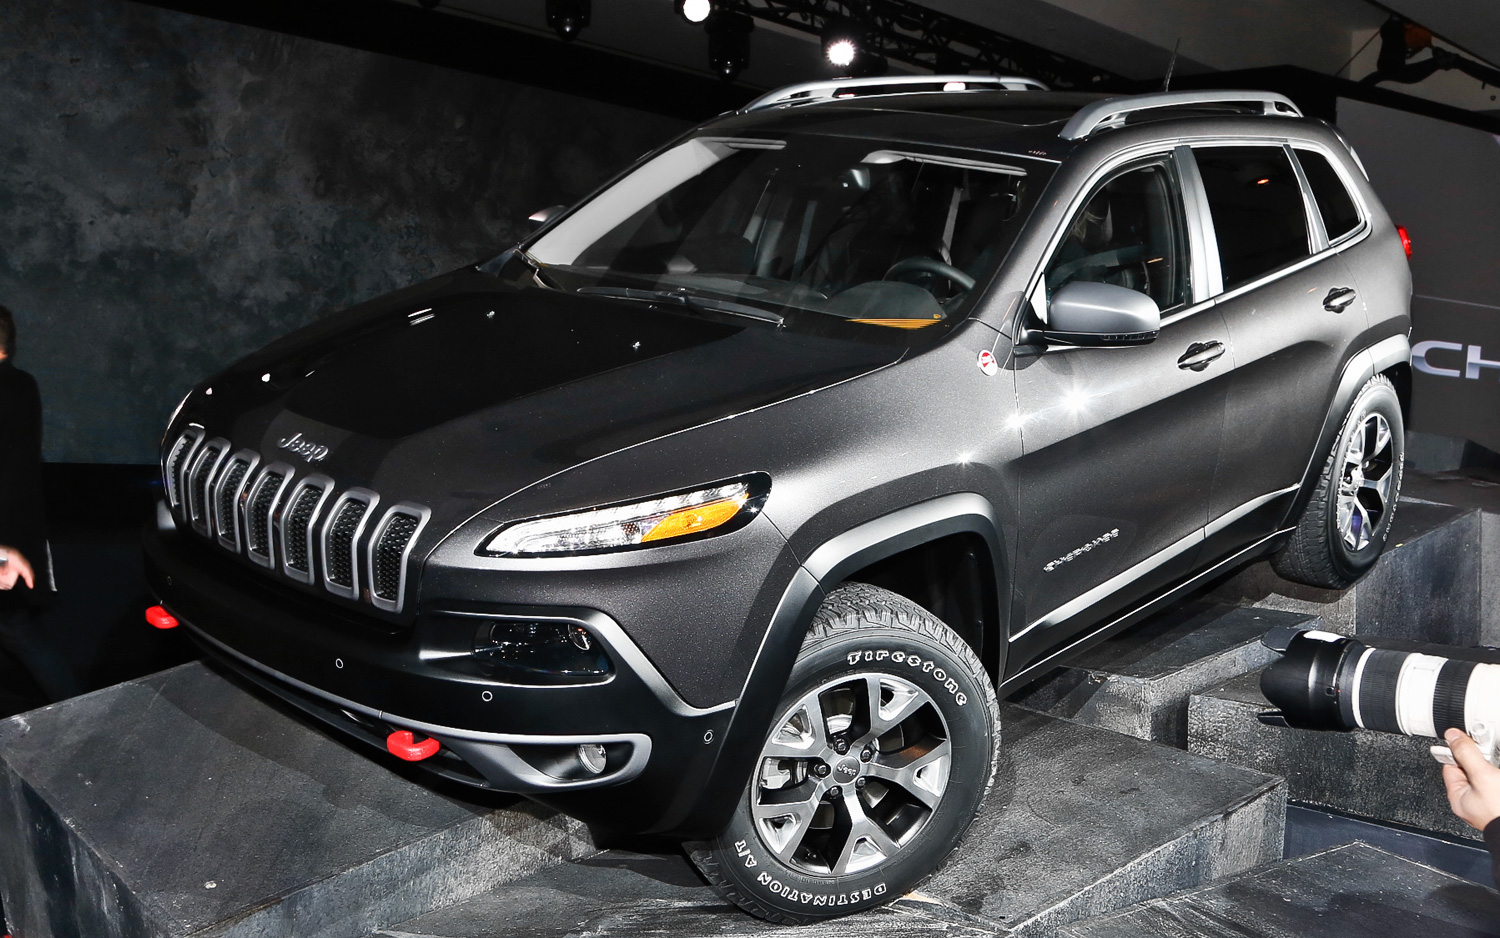 Thread Of The Day: Should Jeep Offer A Cherokee Diesel In The U.S.?